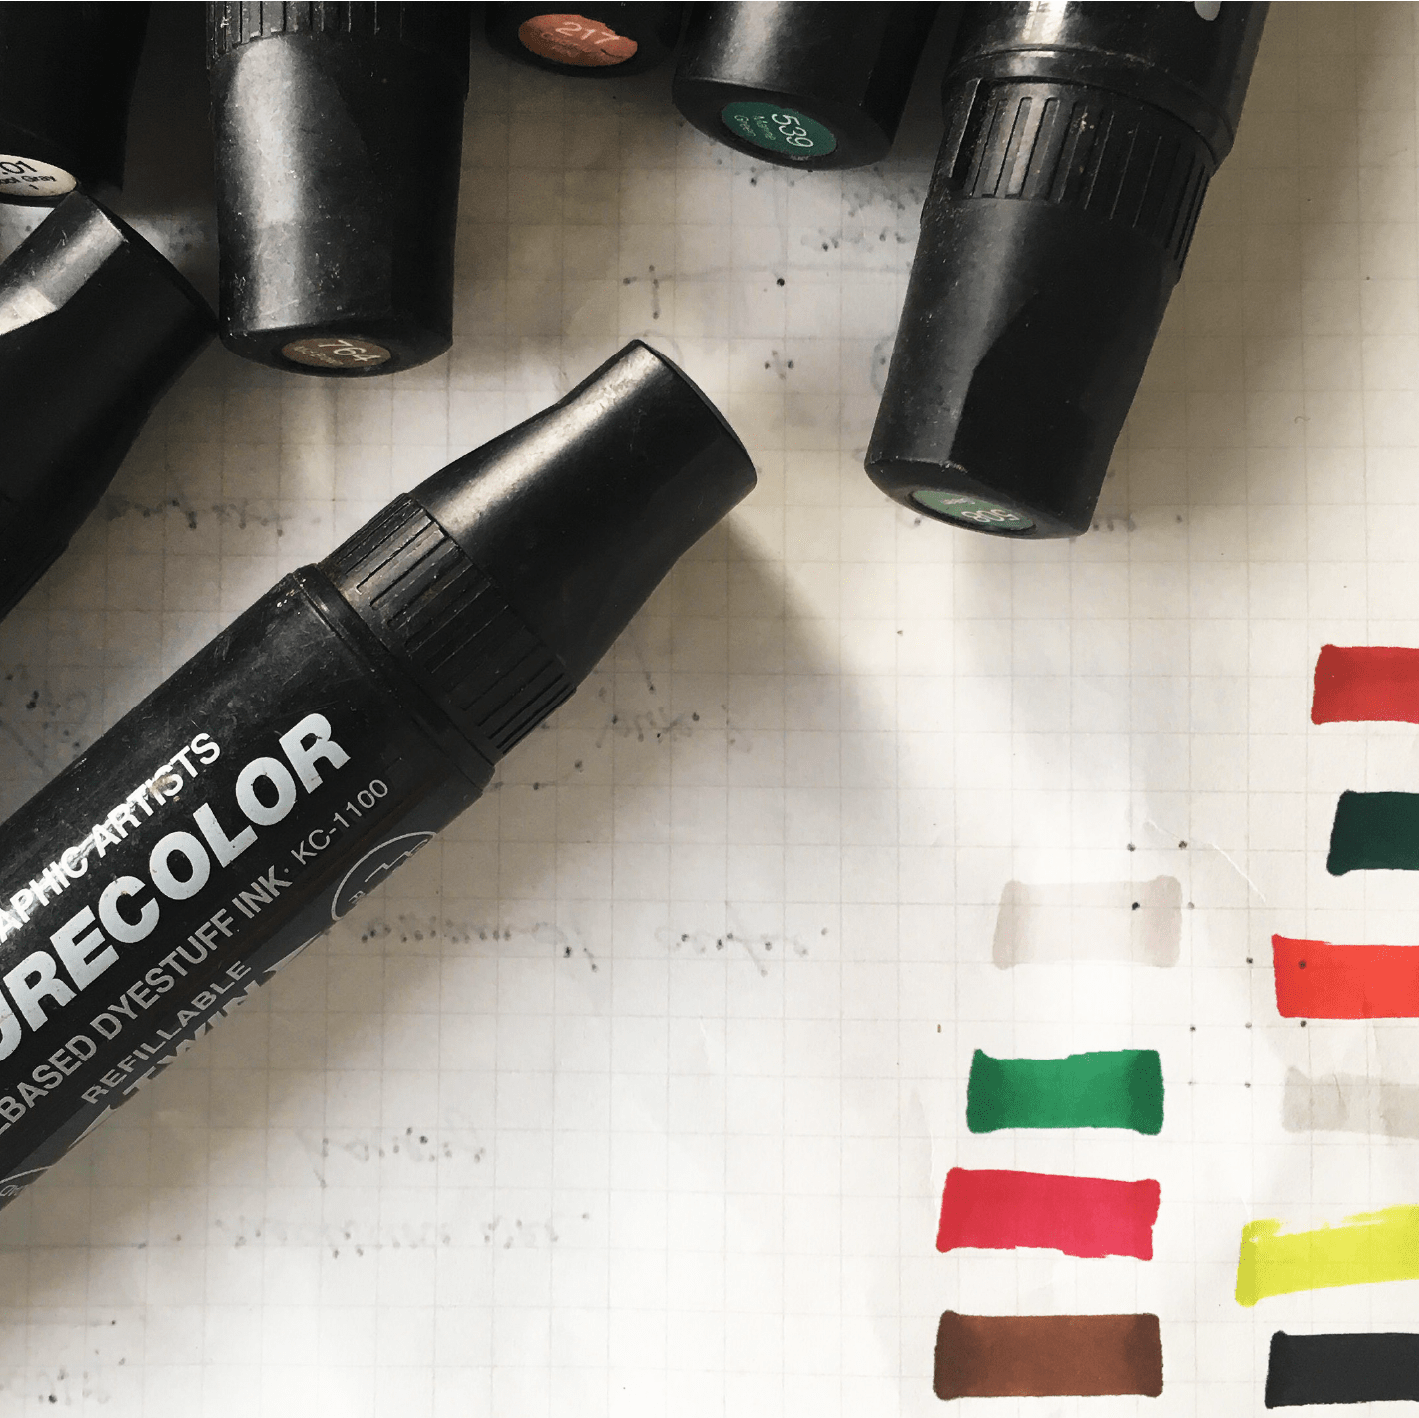 Get Better Refillable Marker by Flexspace